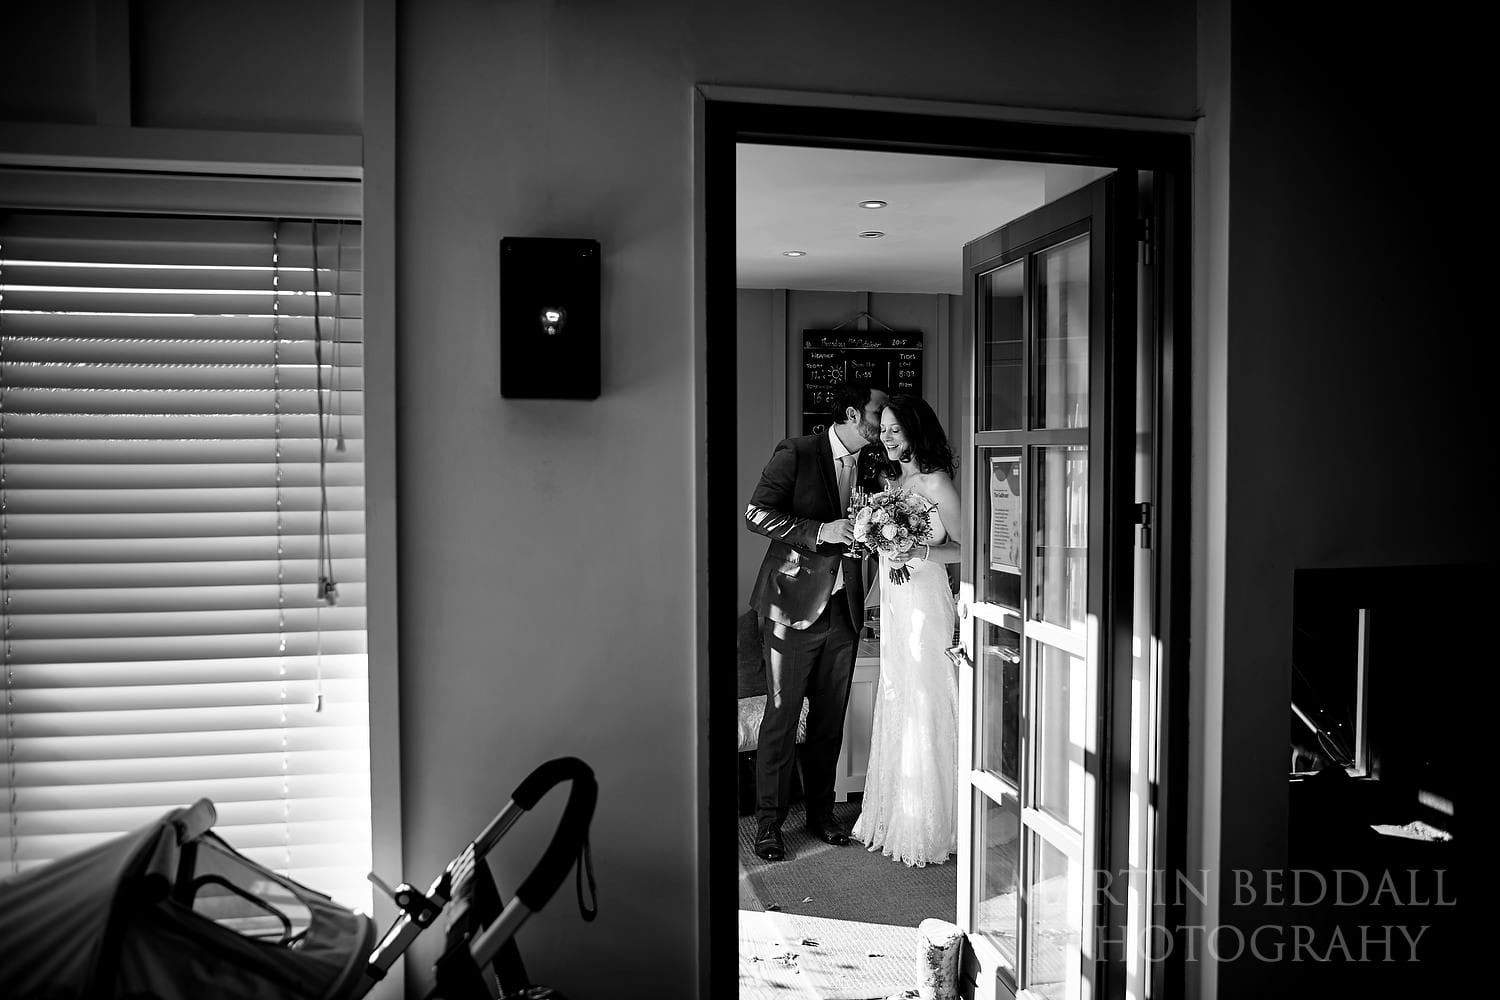 Quiet moment after the wedding ceremony